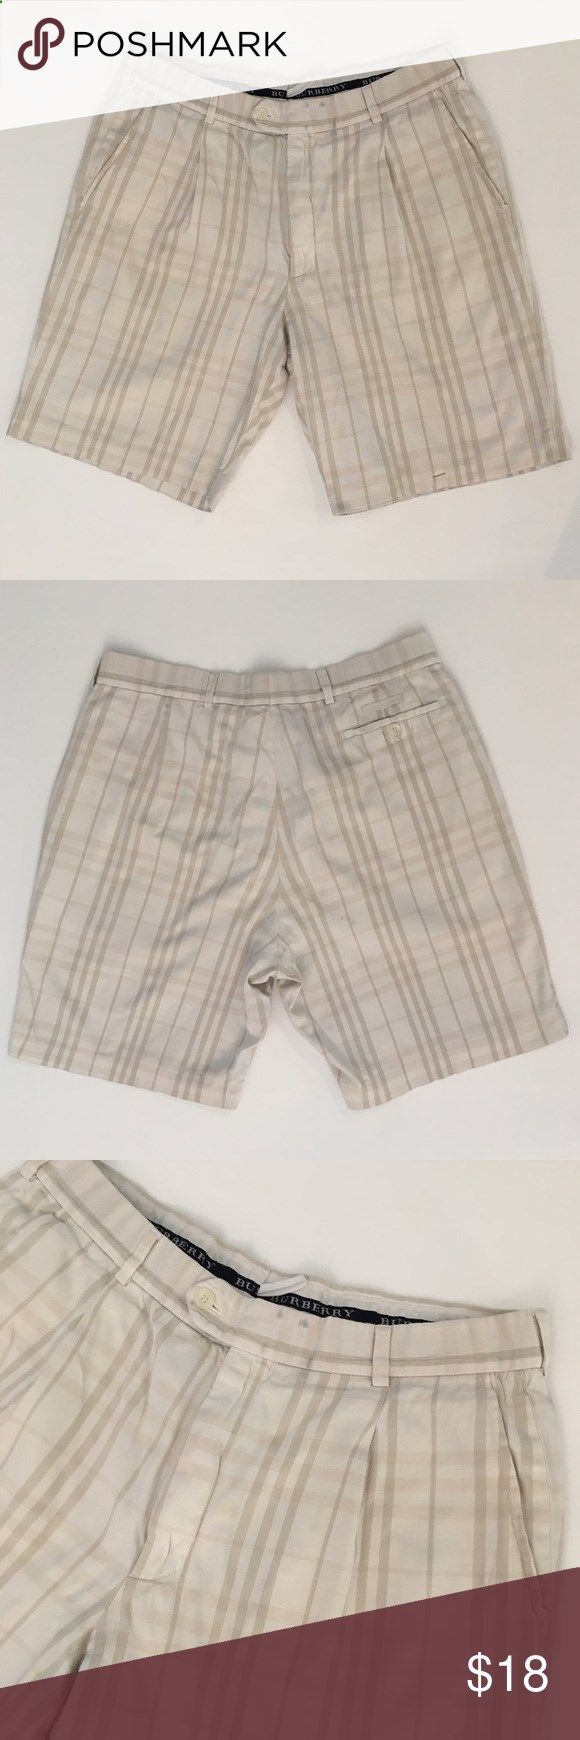 Burberry Golf Shorts Burberry Golf shorts with a light plaid print. They are worn. Please see photos. Minor spots and has belt marks. The hem on the bottom front left is being held by a safety pin it just needs to be sewn. Burberry Shorts